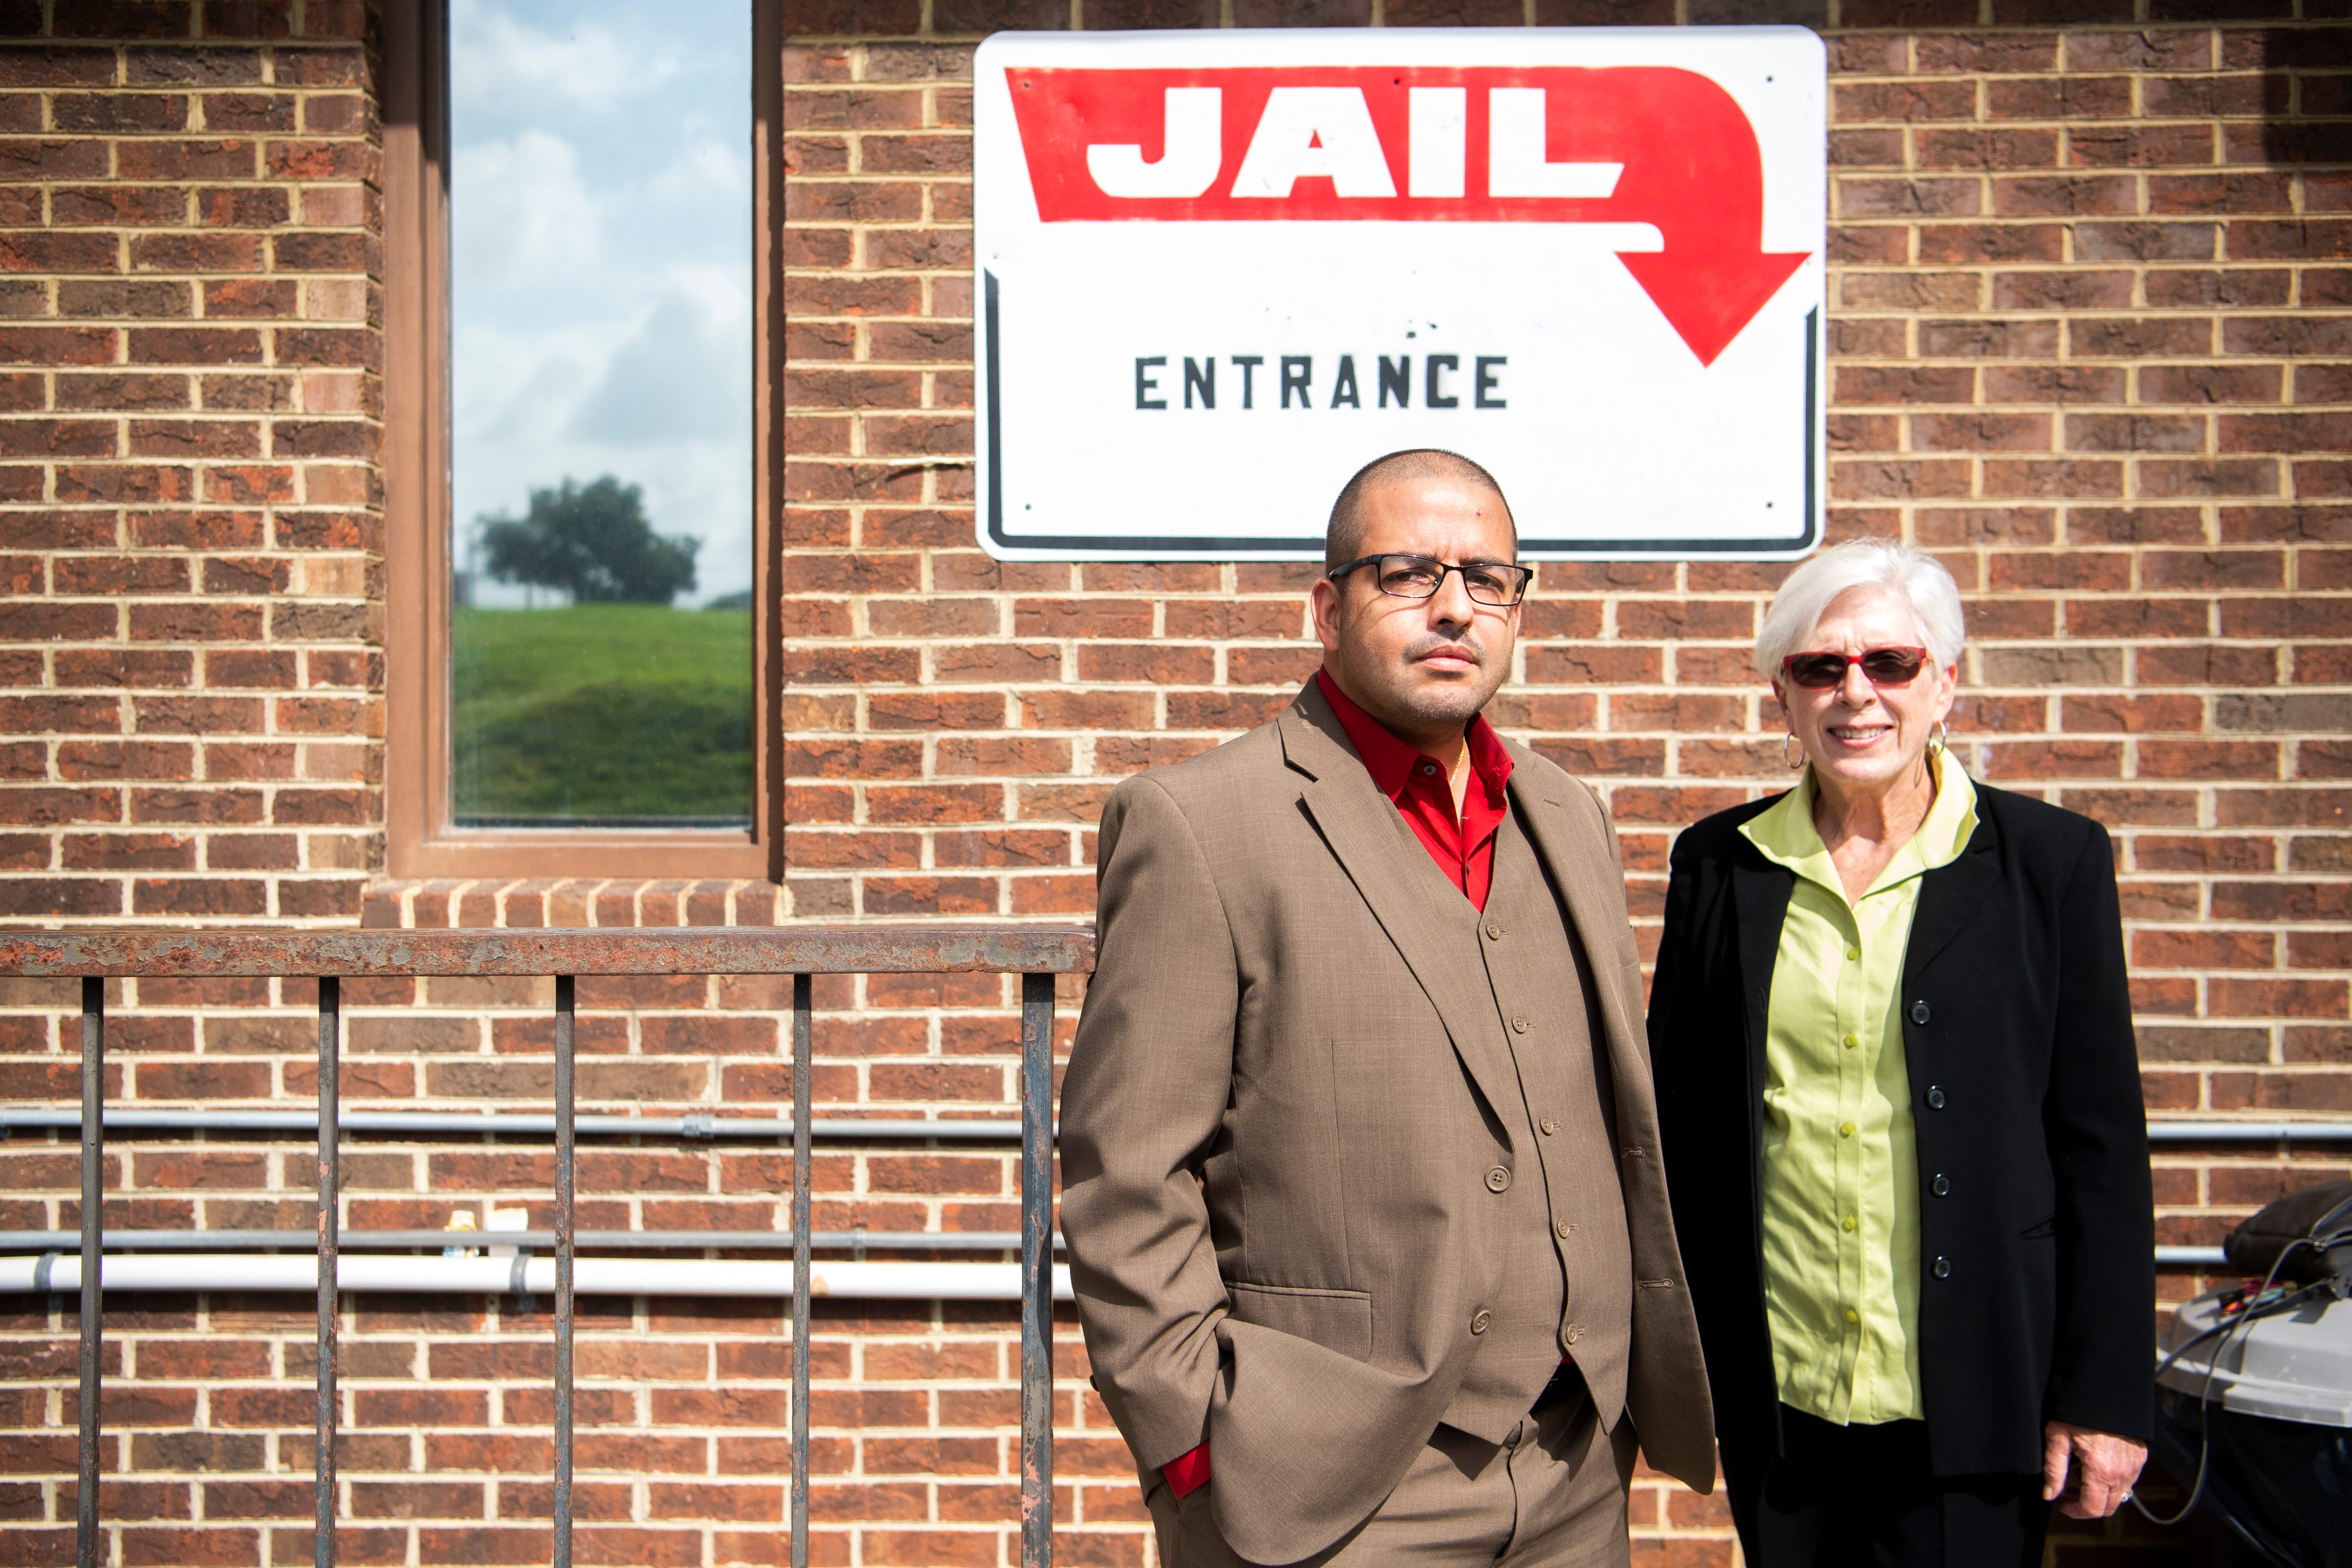 """Two years ago,  Willie Santana took a job as a defender of the poor in Morristown. He worked closely with Ethel Rhodes, who helped open eyes to problems in the bail system. """"I knew the system just didn't work like what we had learned in law school,"""" Santana told Knox News. """"I was able to see it was wrong."""""""